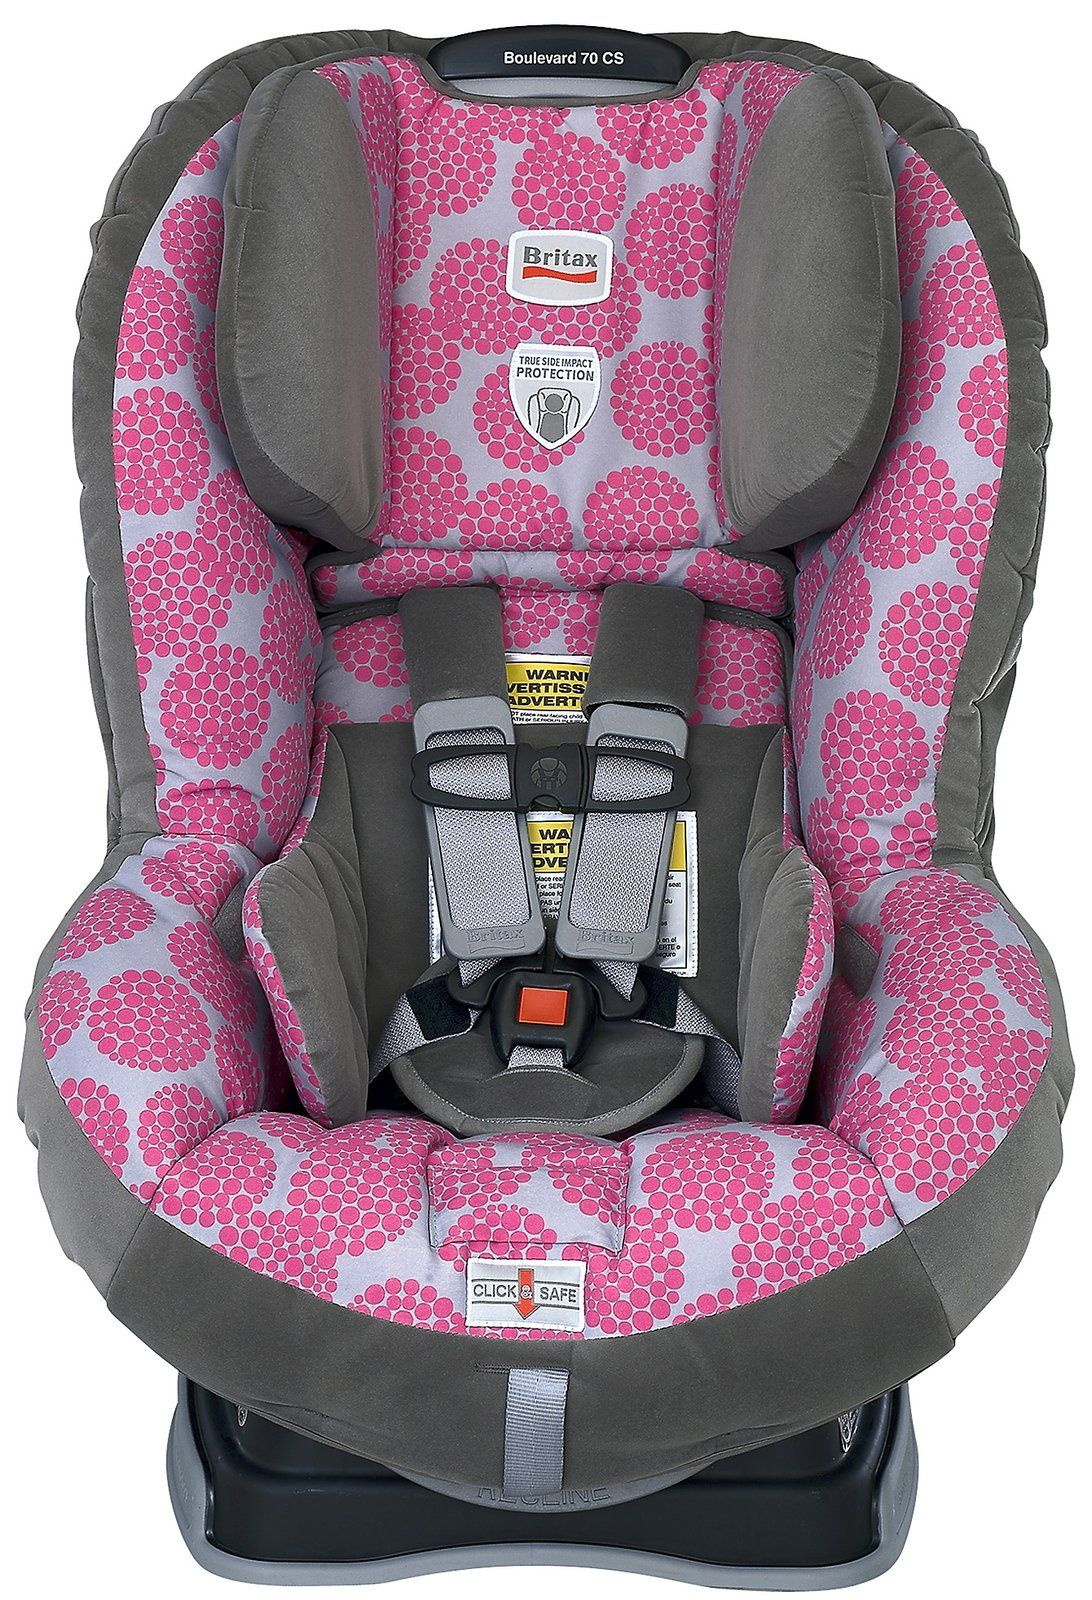 Britax Boulevard 70 Cs Convertible Car Seat Sophia Rear Facing From 5 To 40 Pounds And Forward Up 271 I Like This Design But